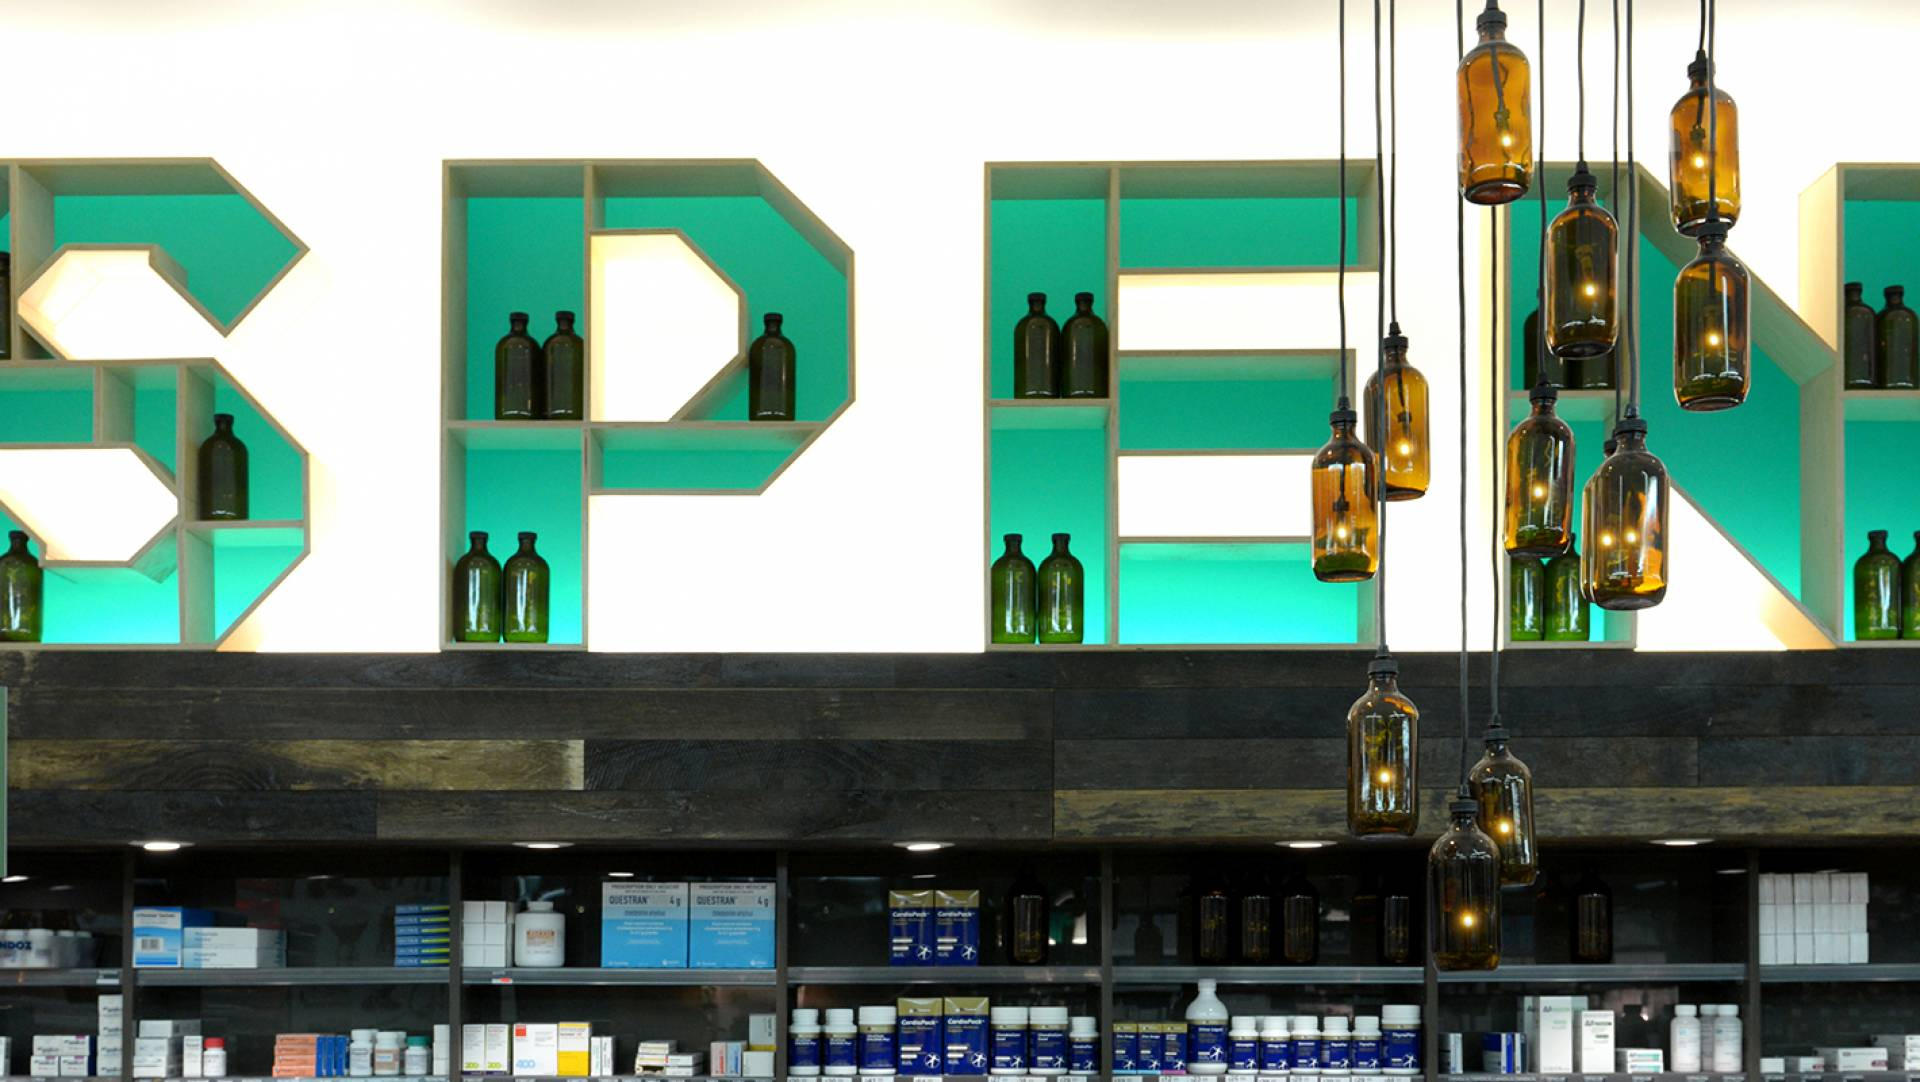 Pharmacy Design Melbourne-Custom Sculptural Signage & Lighting